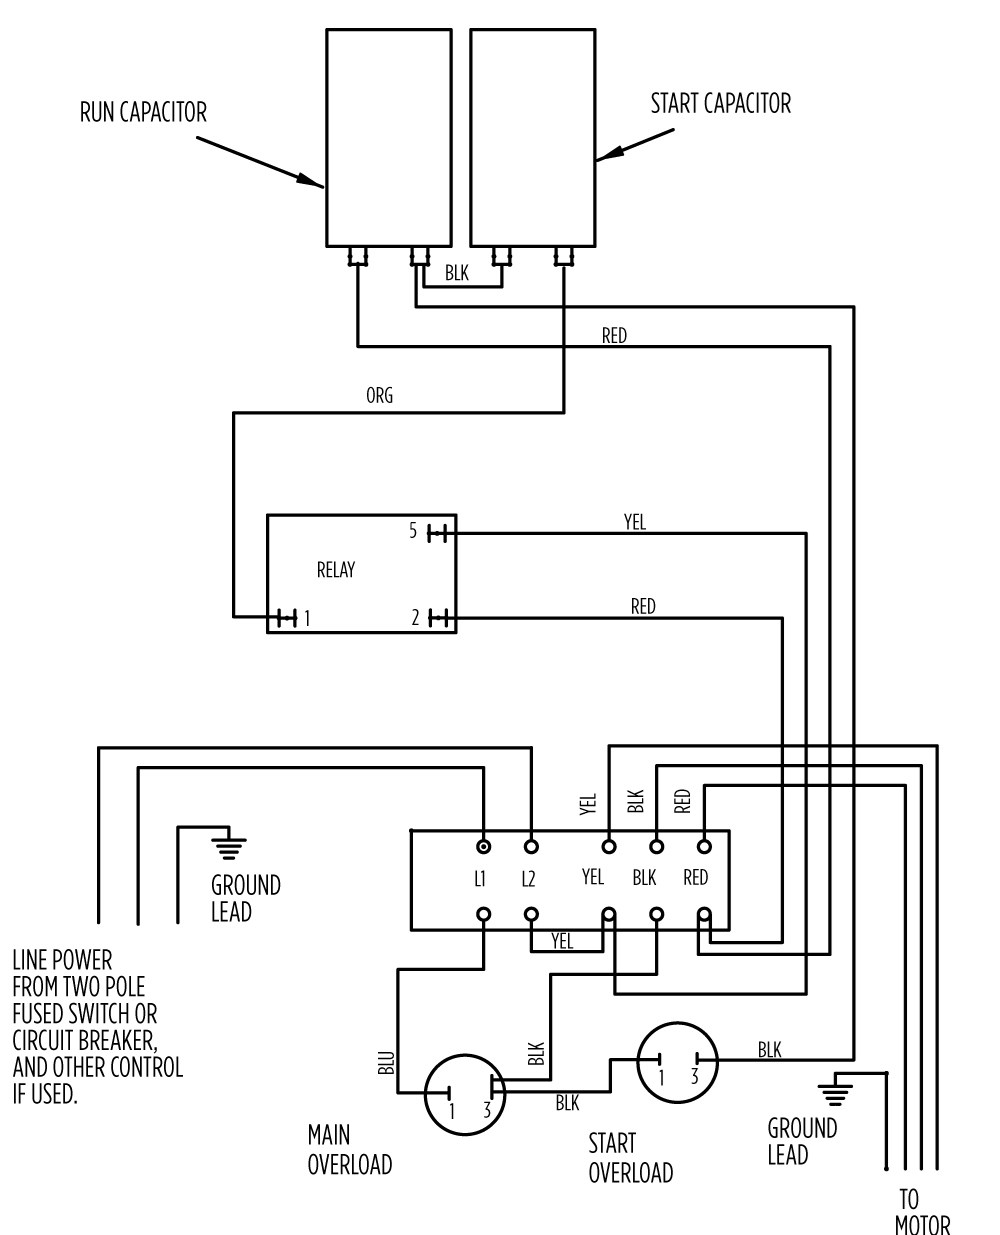 2 hp standard 282 301 8110_aim gallery?format=jpg&quality=80 aim manual page 55 single phase motors and controls motor franklin electric wiring diagrams at n-0.co